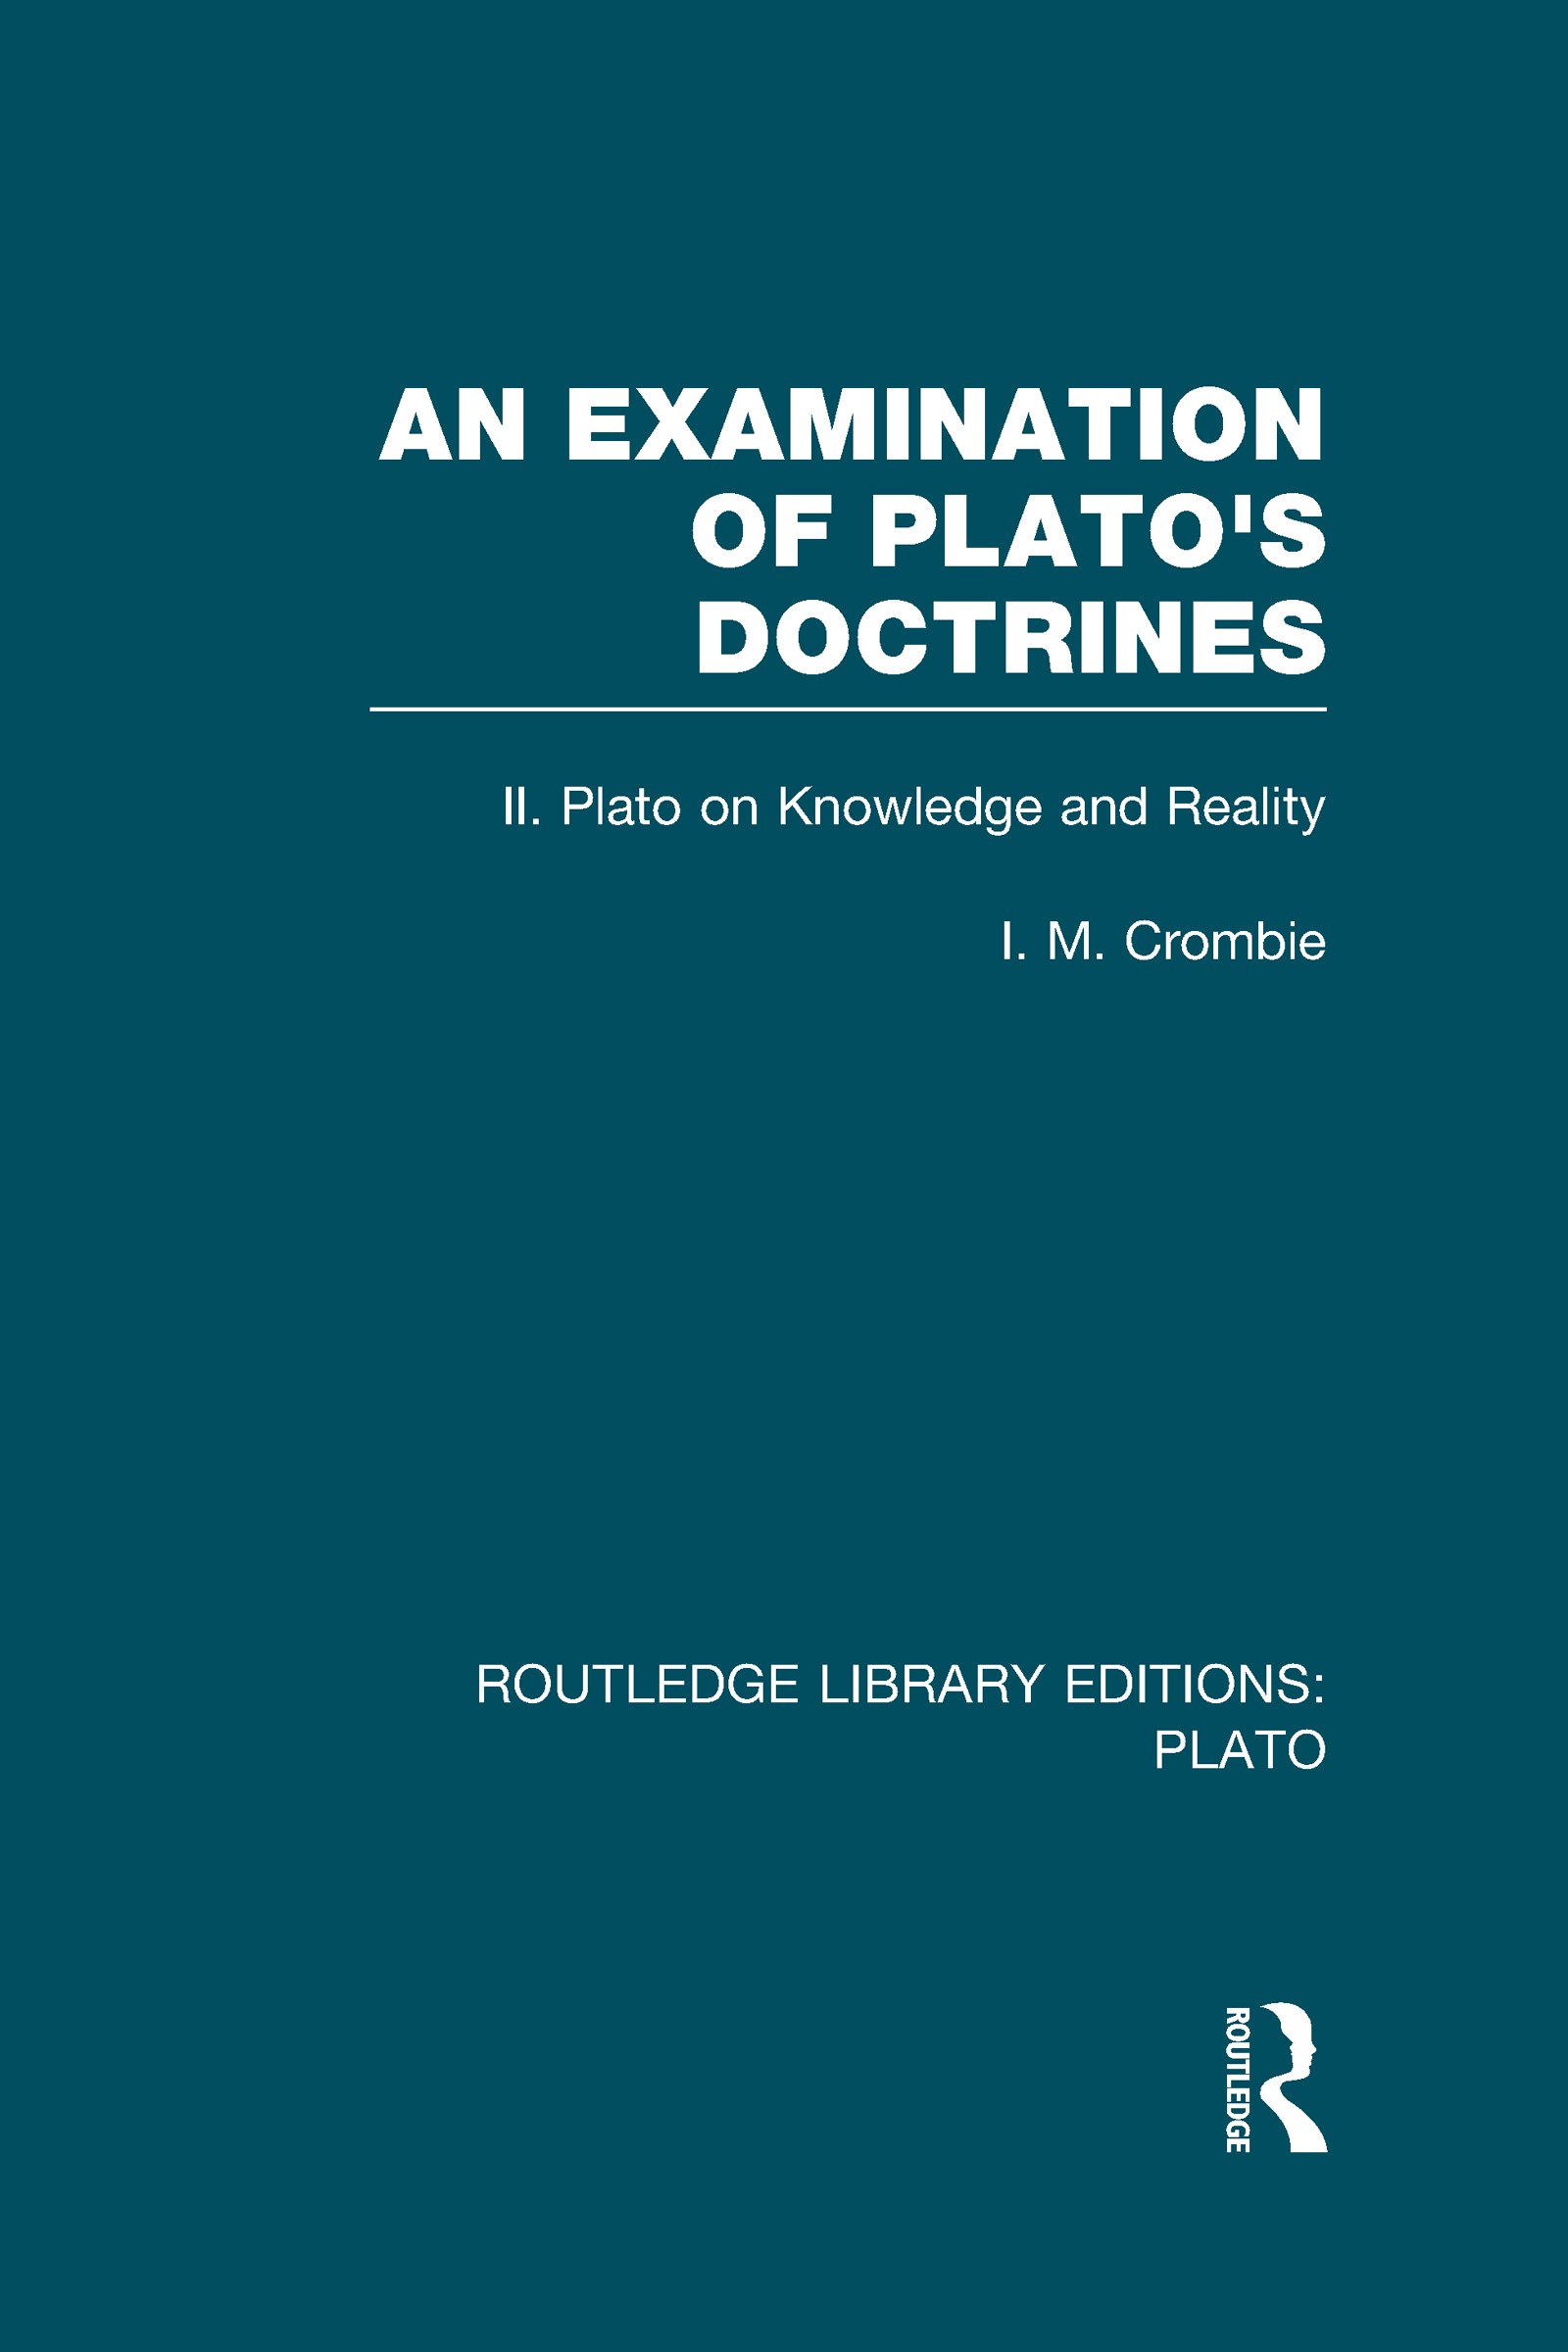 An Examination of Plato's Doctrines Vol 2 (RLE: Plato): Volume 2 Plato on Knowledge and Reality (Hardback) book cover